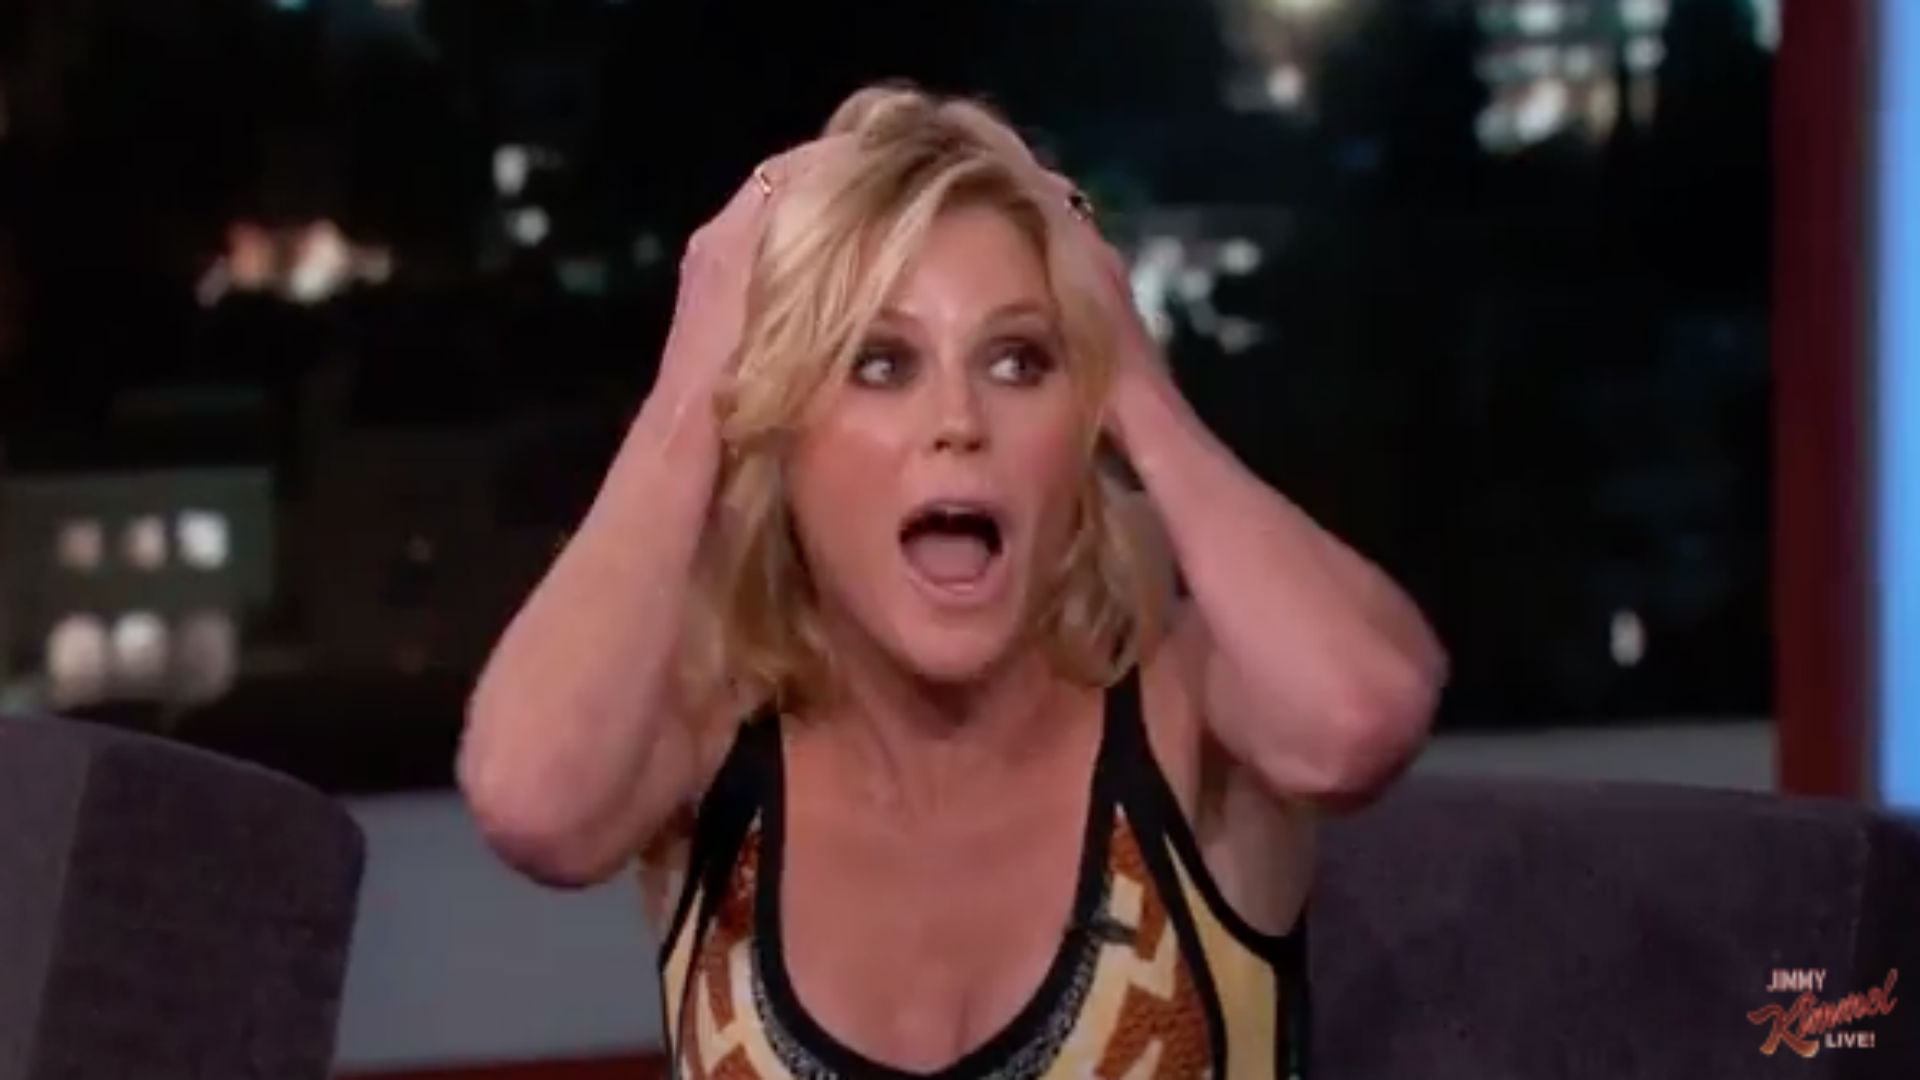 Julie Bowen almost got kicked out of a Lakers game once